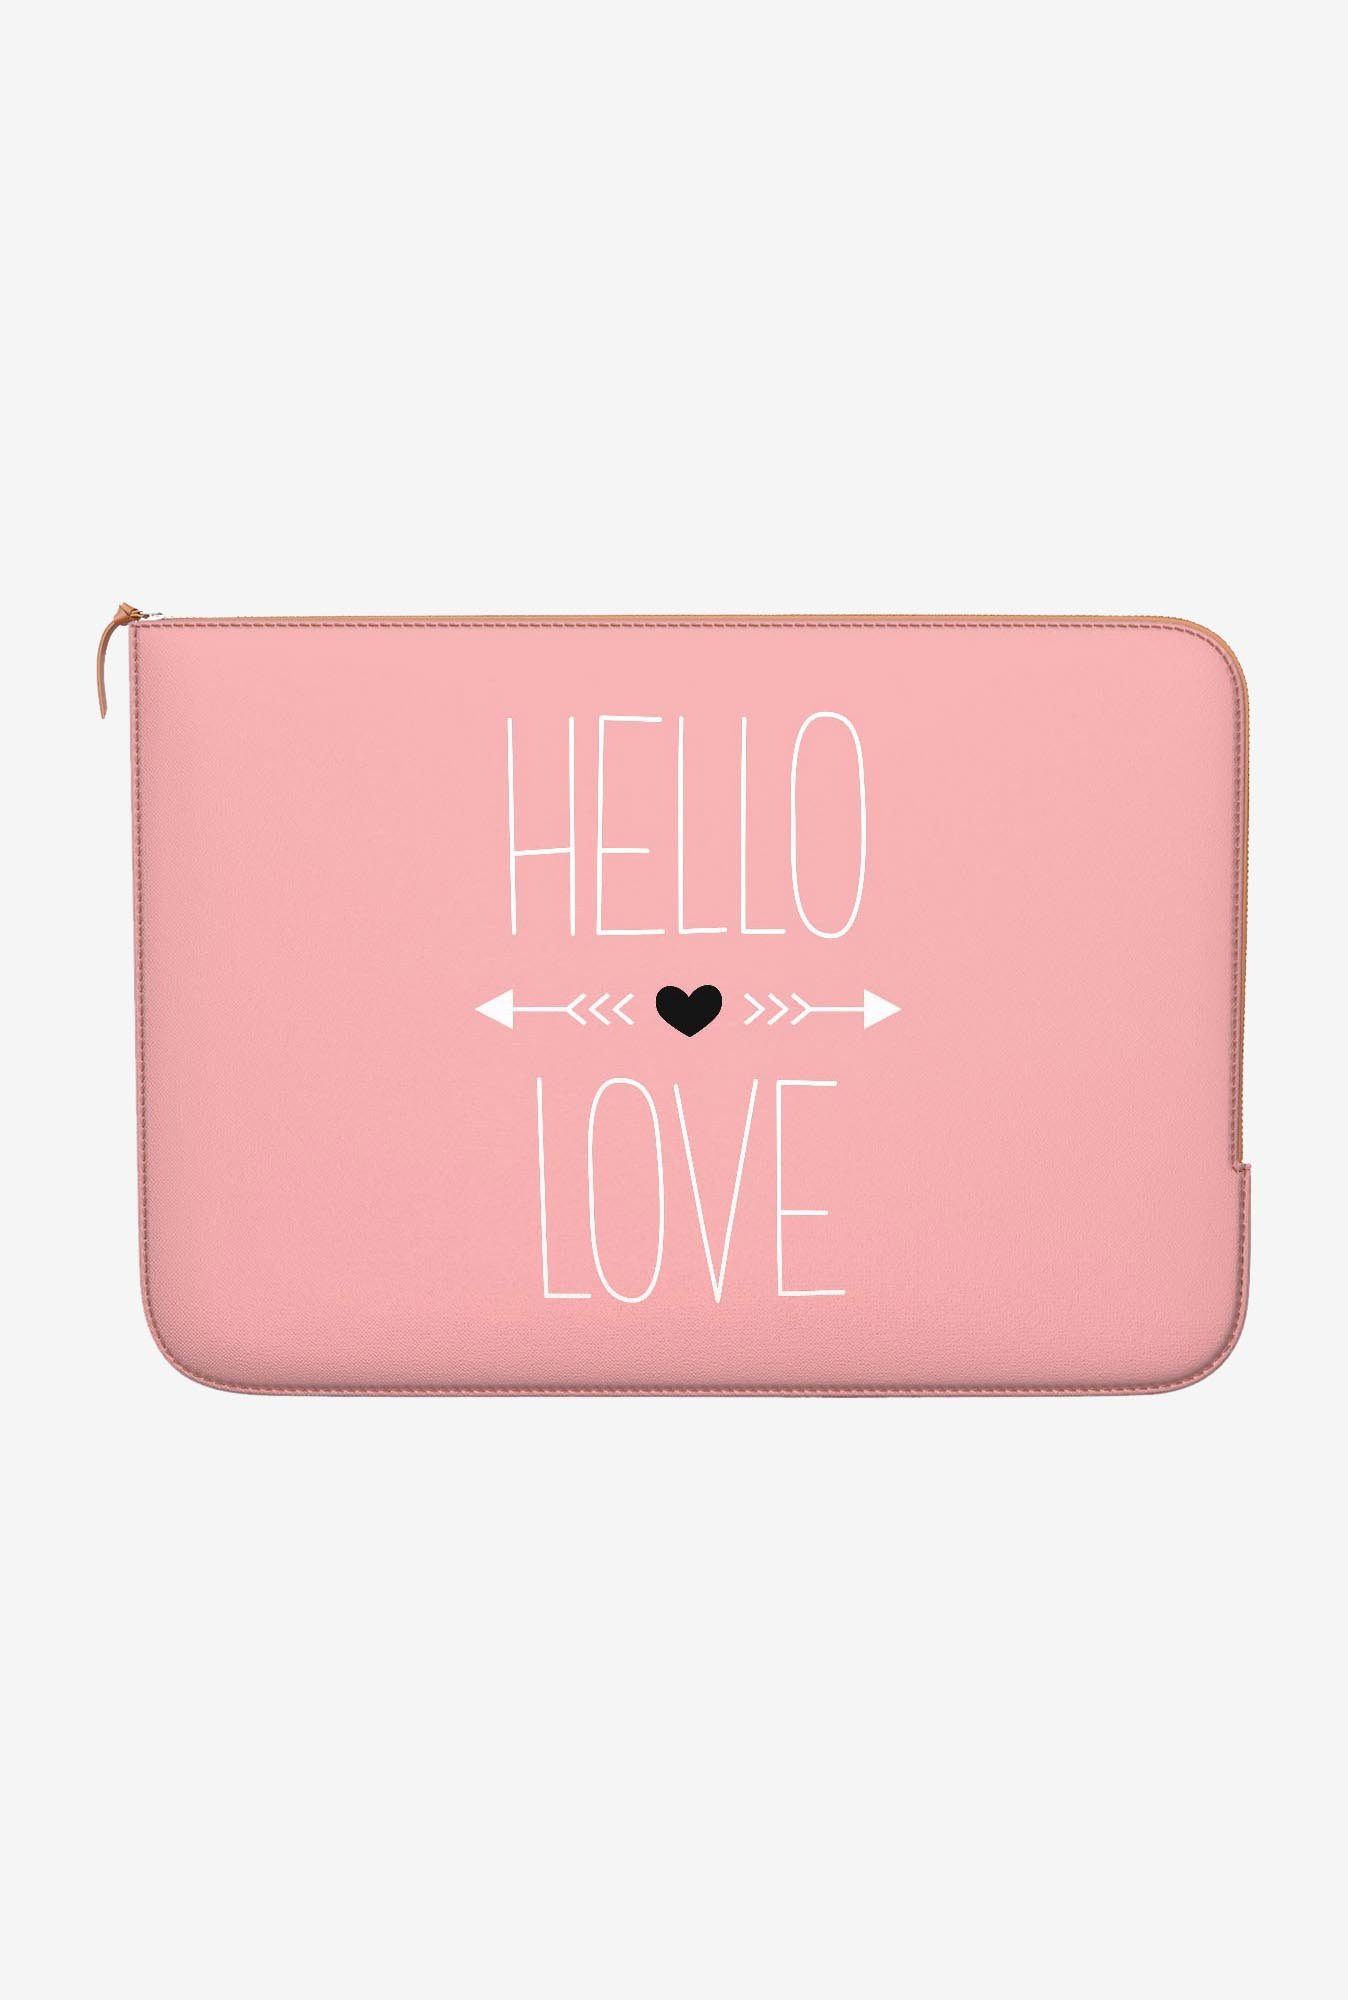 DailyObjects Hello Love MacBook 12 Zippered Sleeve